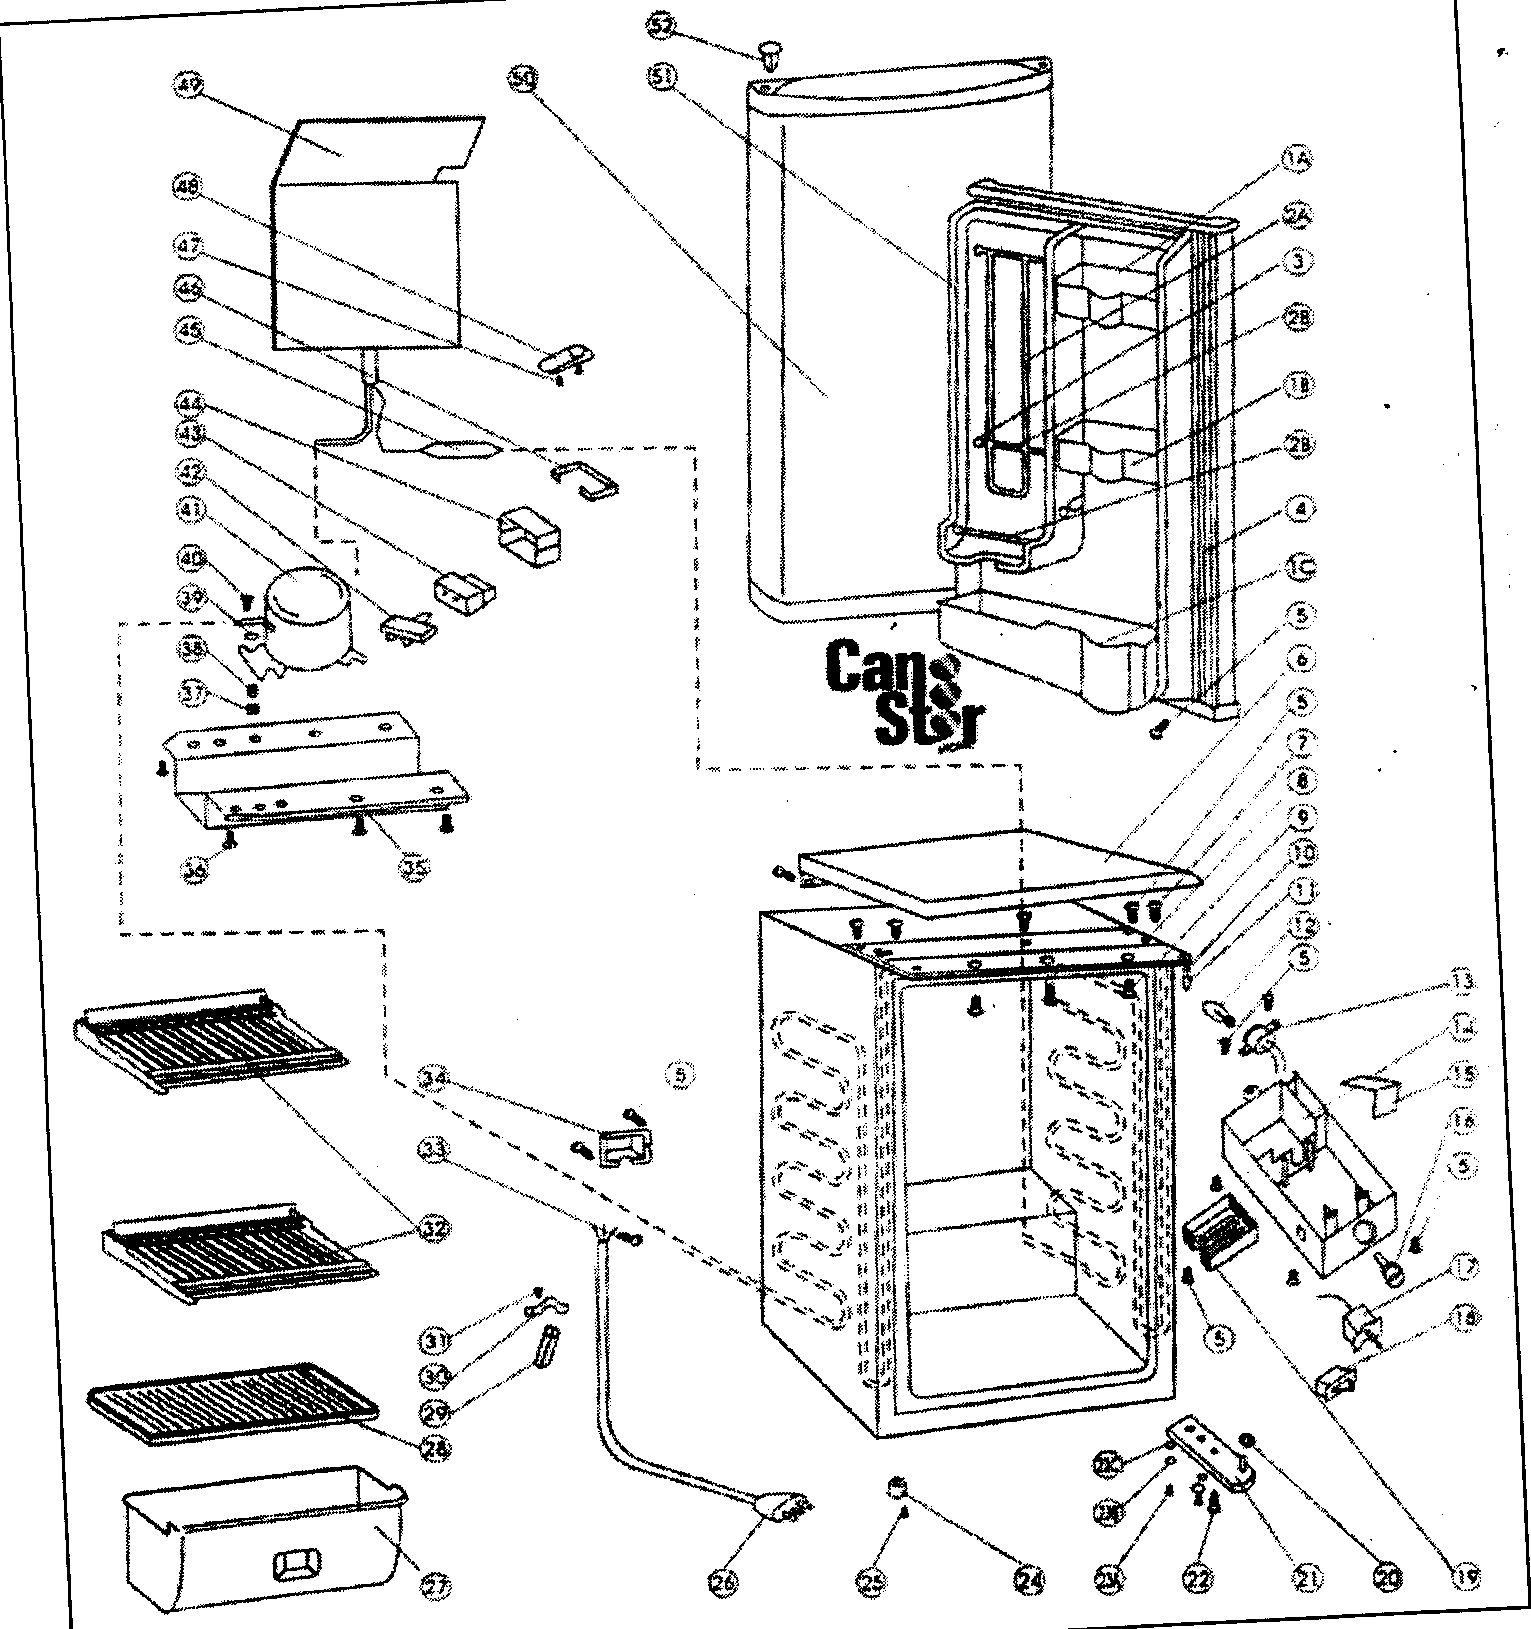 hight resolution of danby dar452bl cabinet parts diagram cabinet parts displaying 19 parts refrigerator power cord